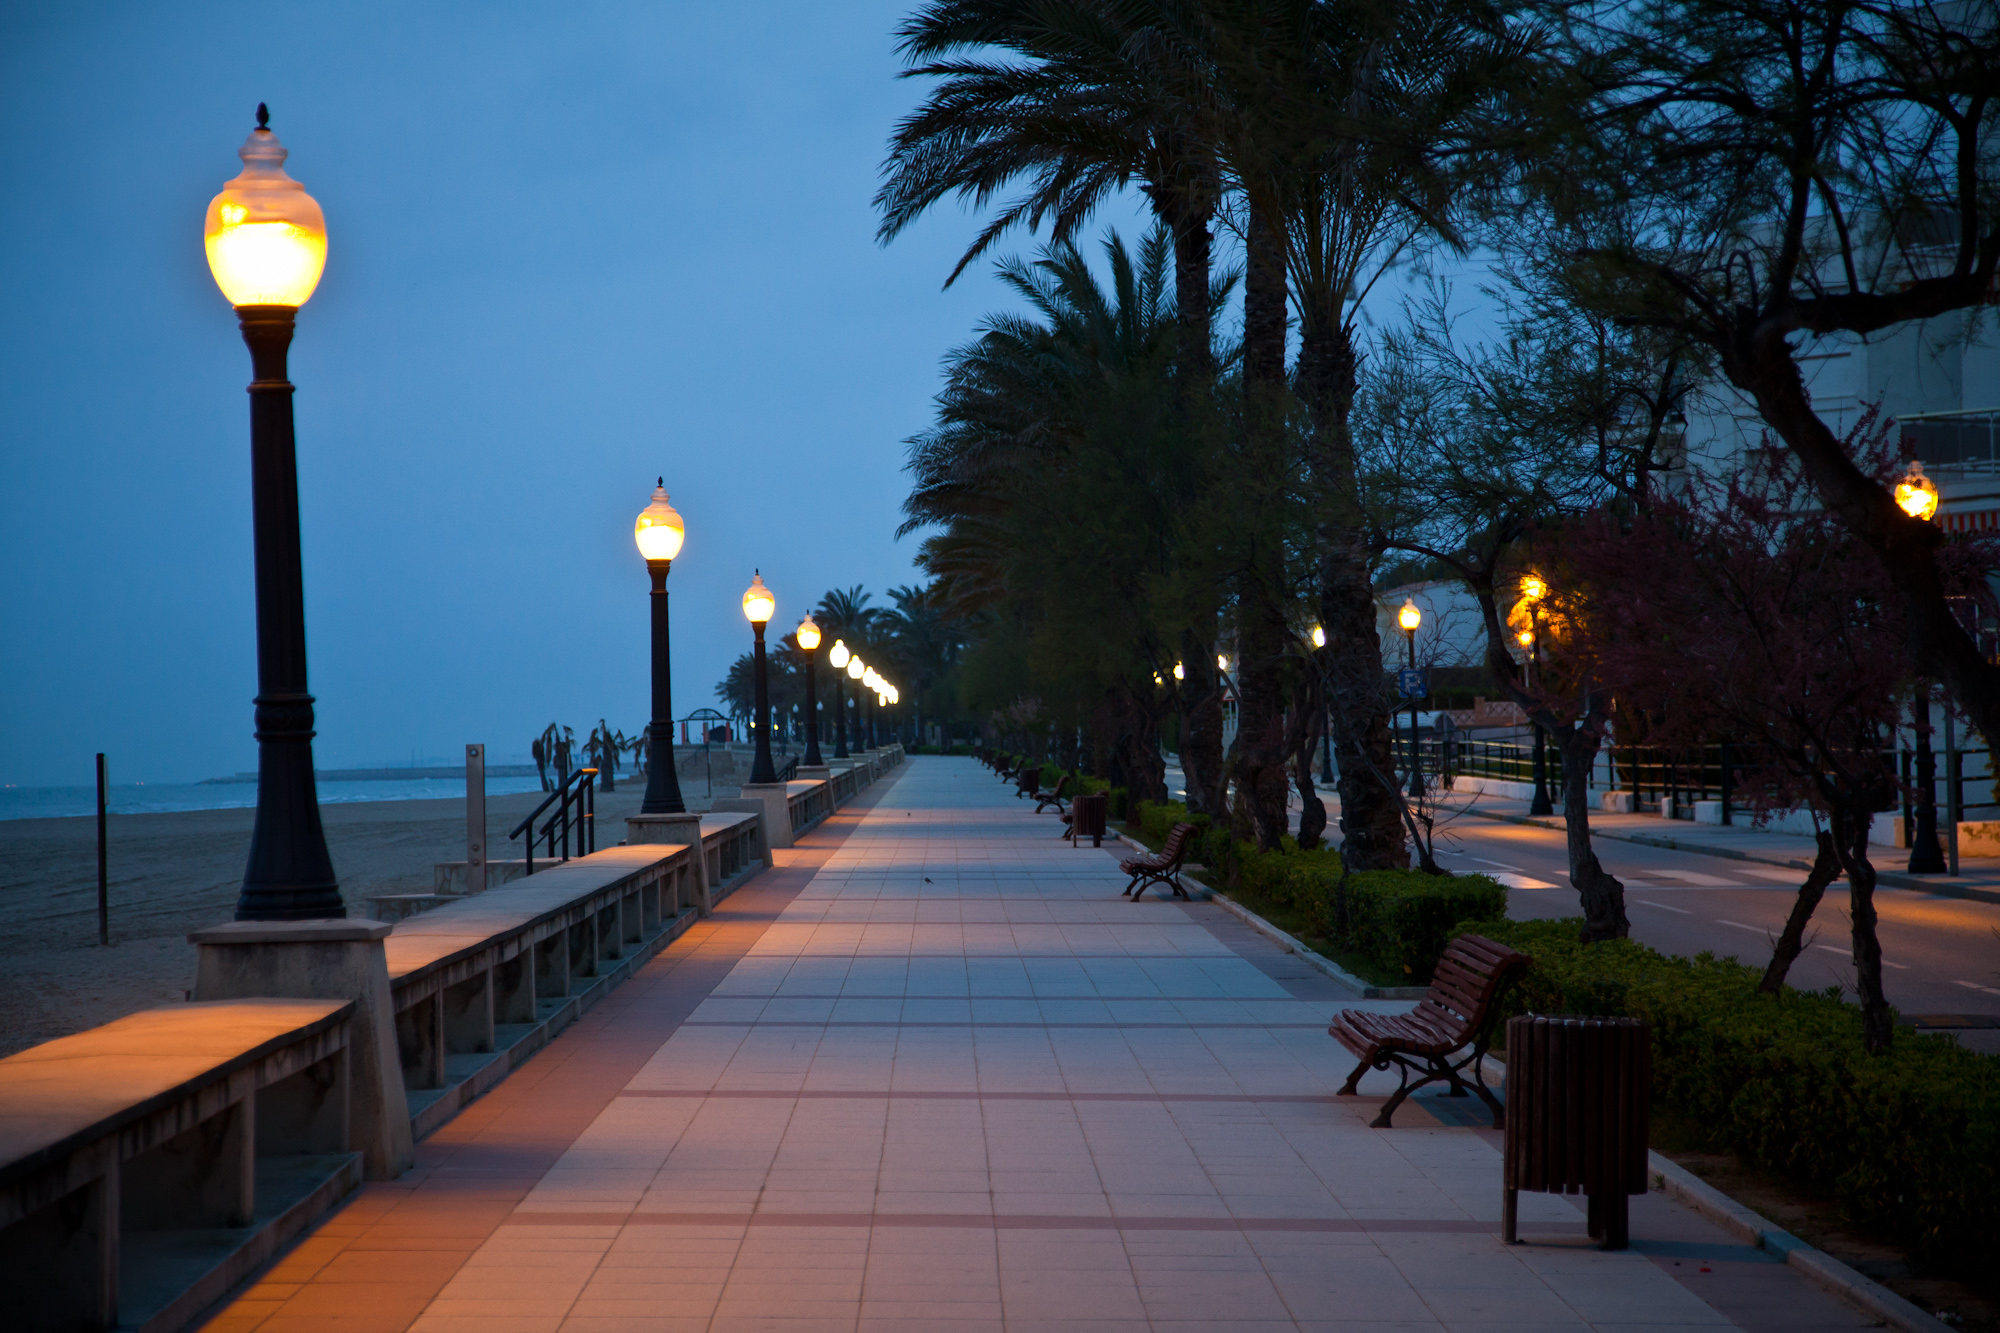 Workdays were long while in Spain, but evenings I was able to get out and stroll the Promenade at Coma Ruga.  A nice way to end the day.